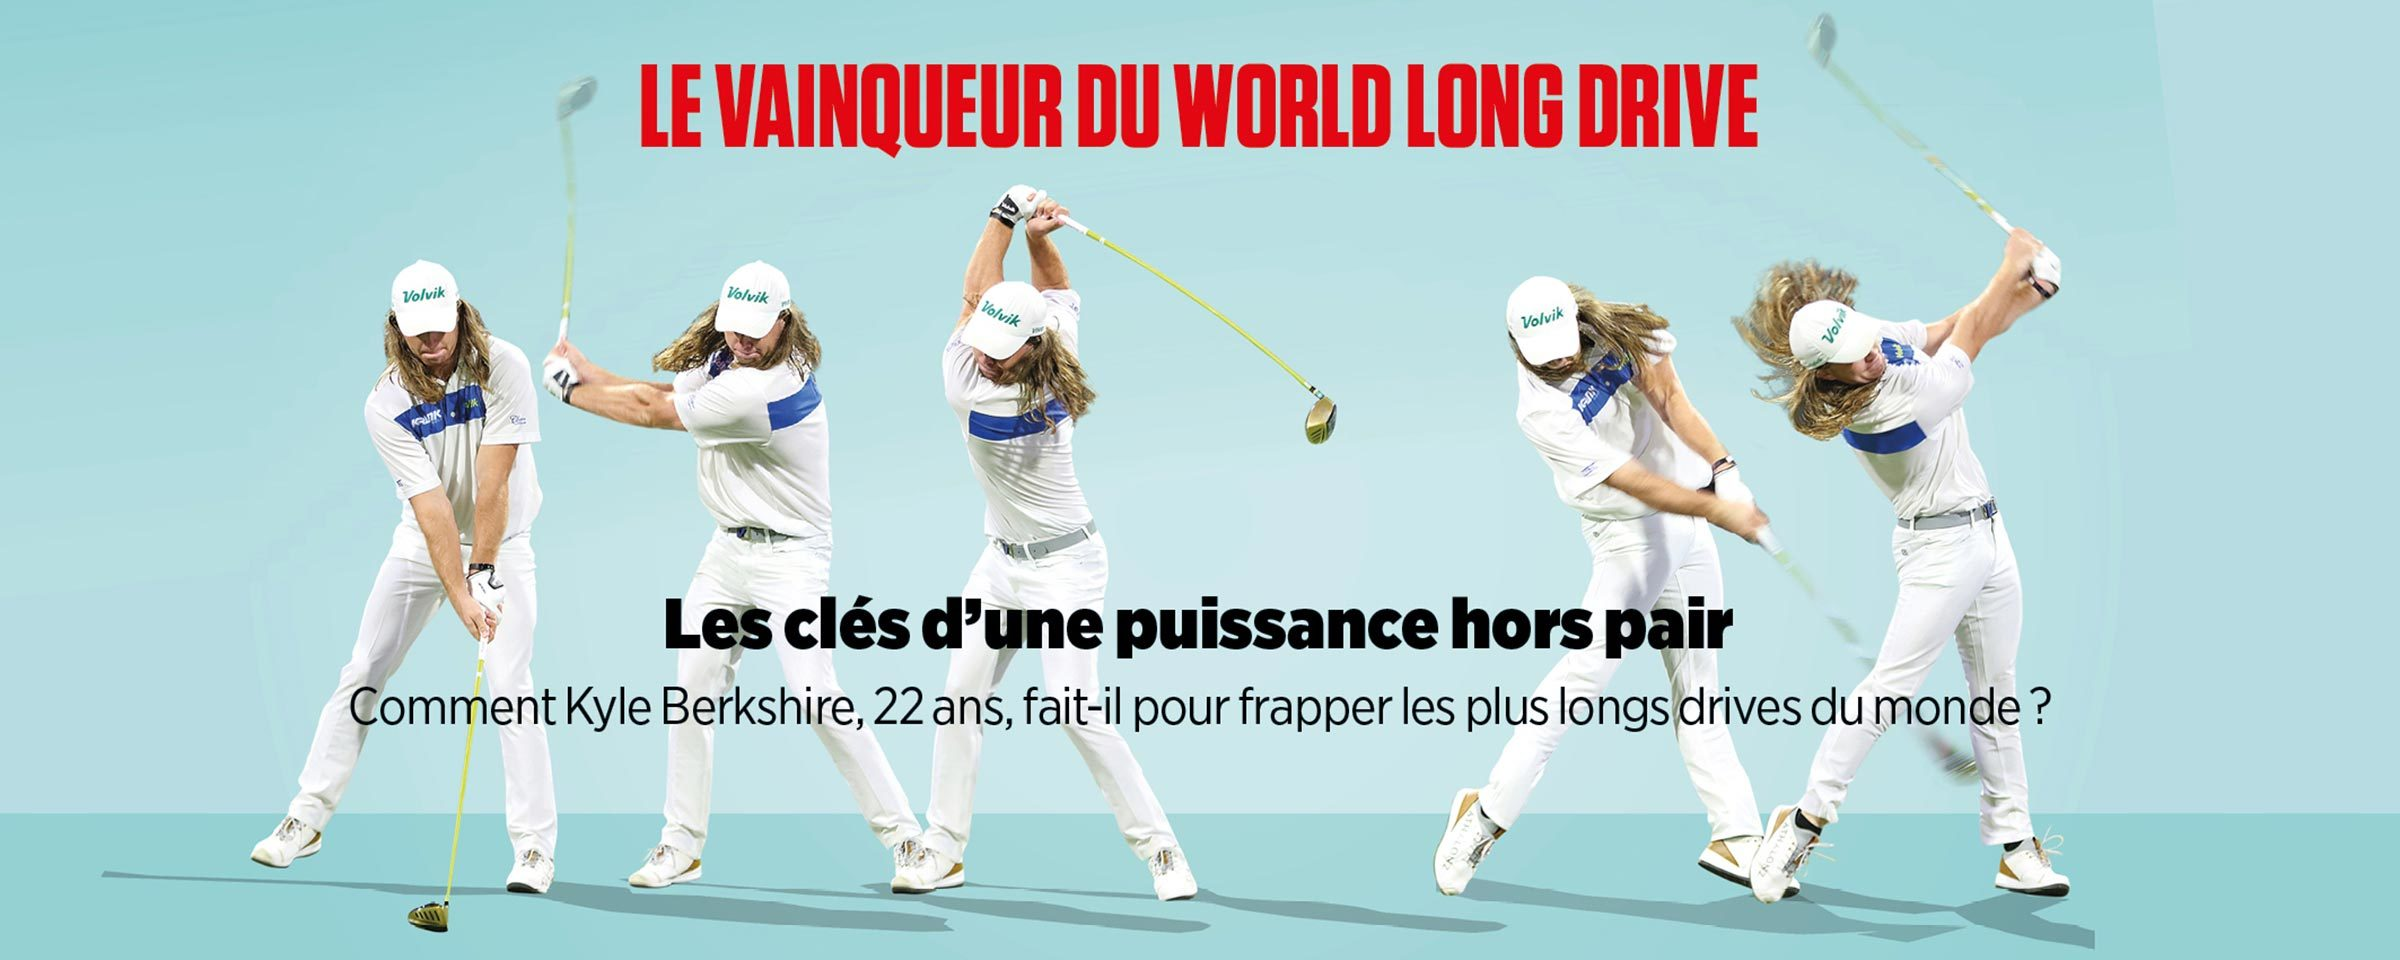 Le vainqueur du world long drive